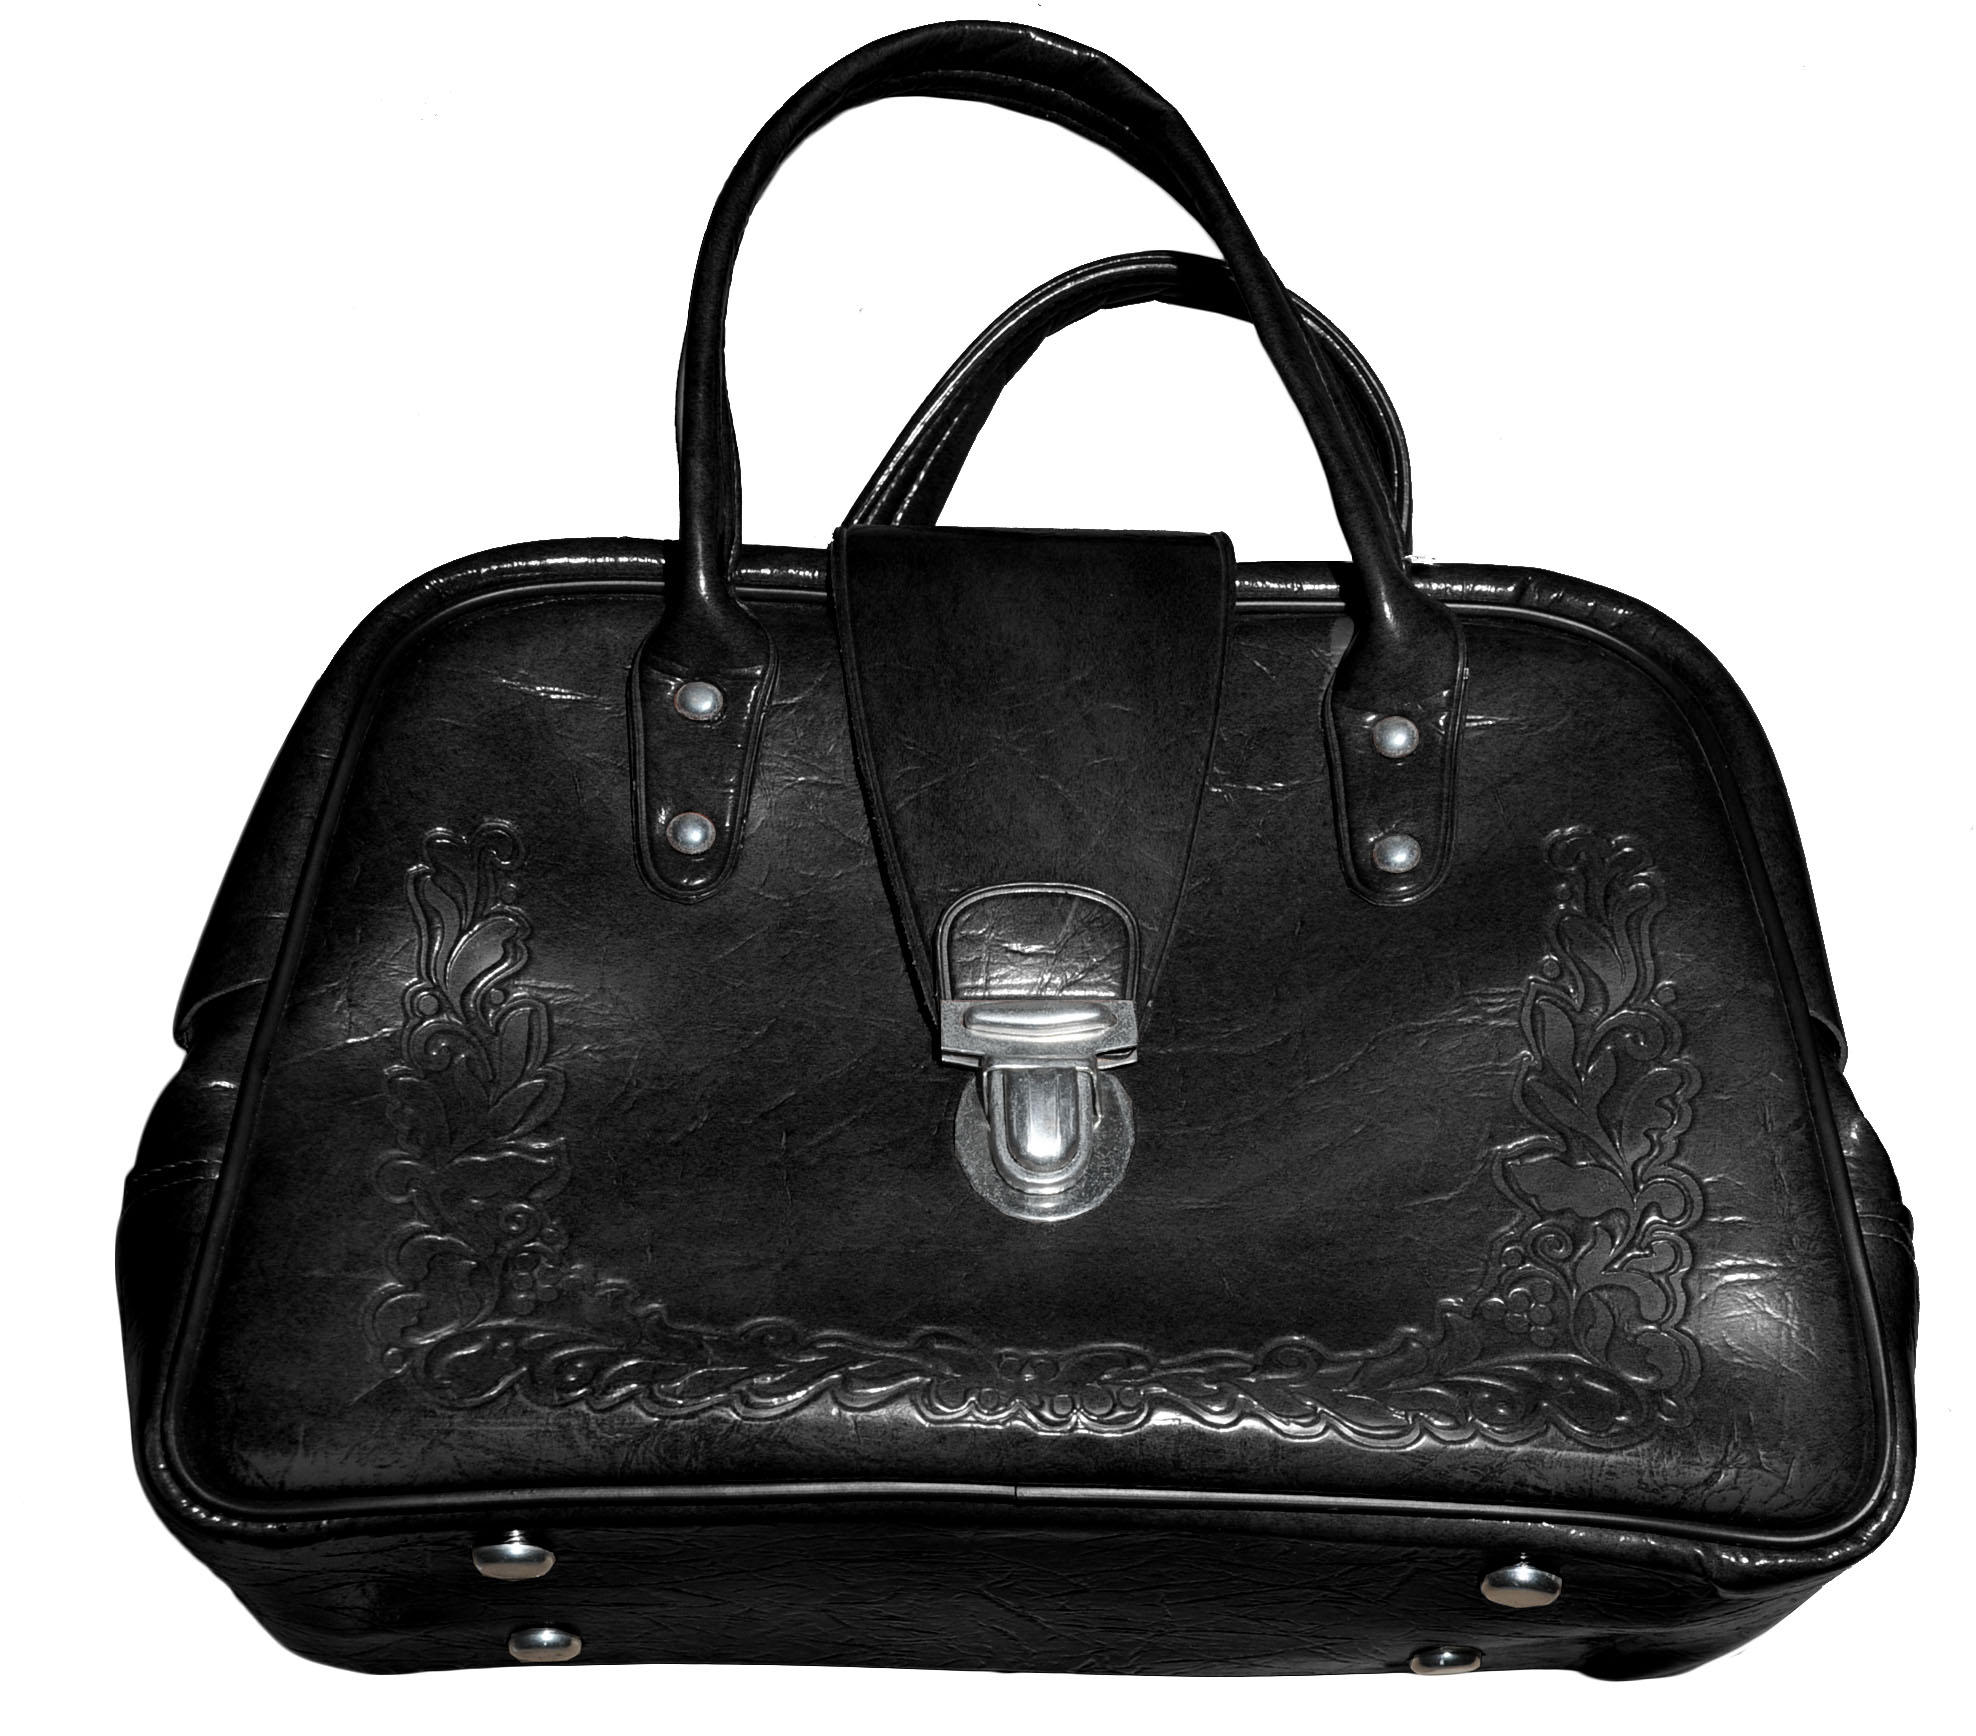 Valeria Fermendjin Black Bag